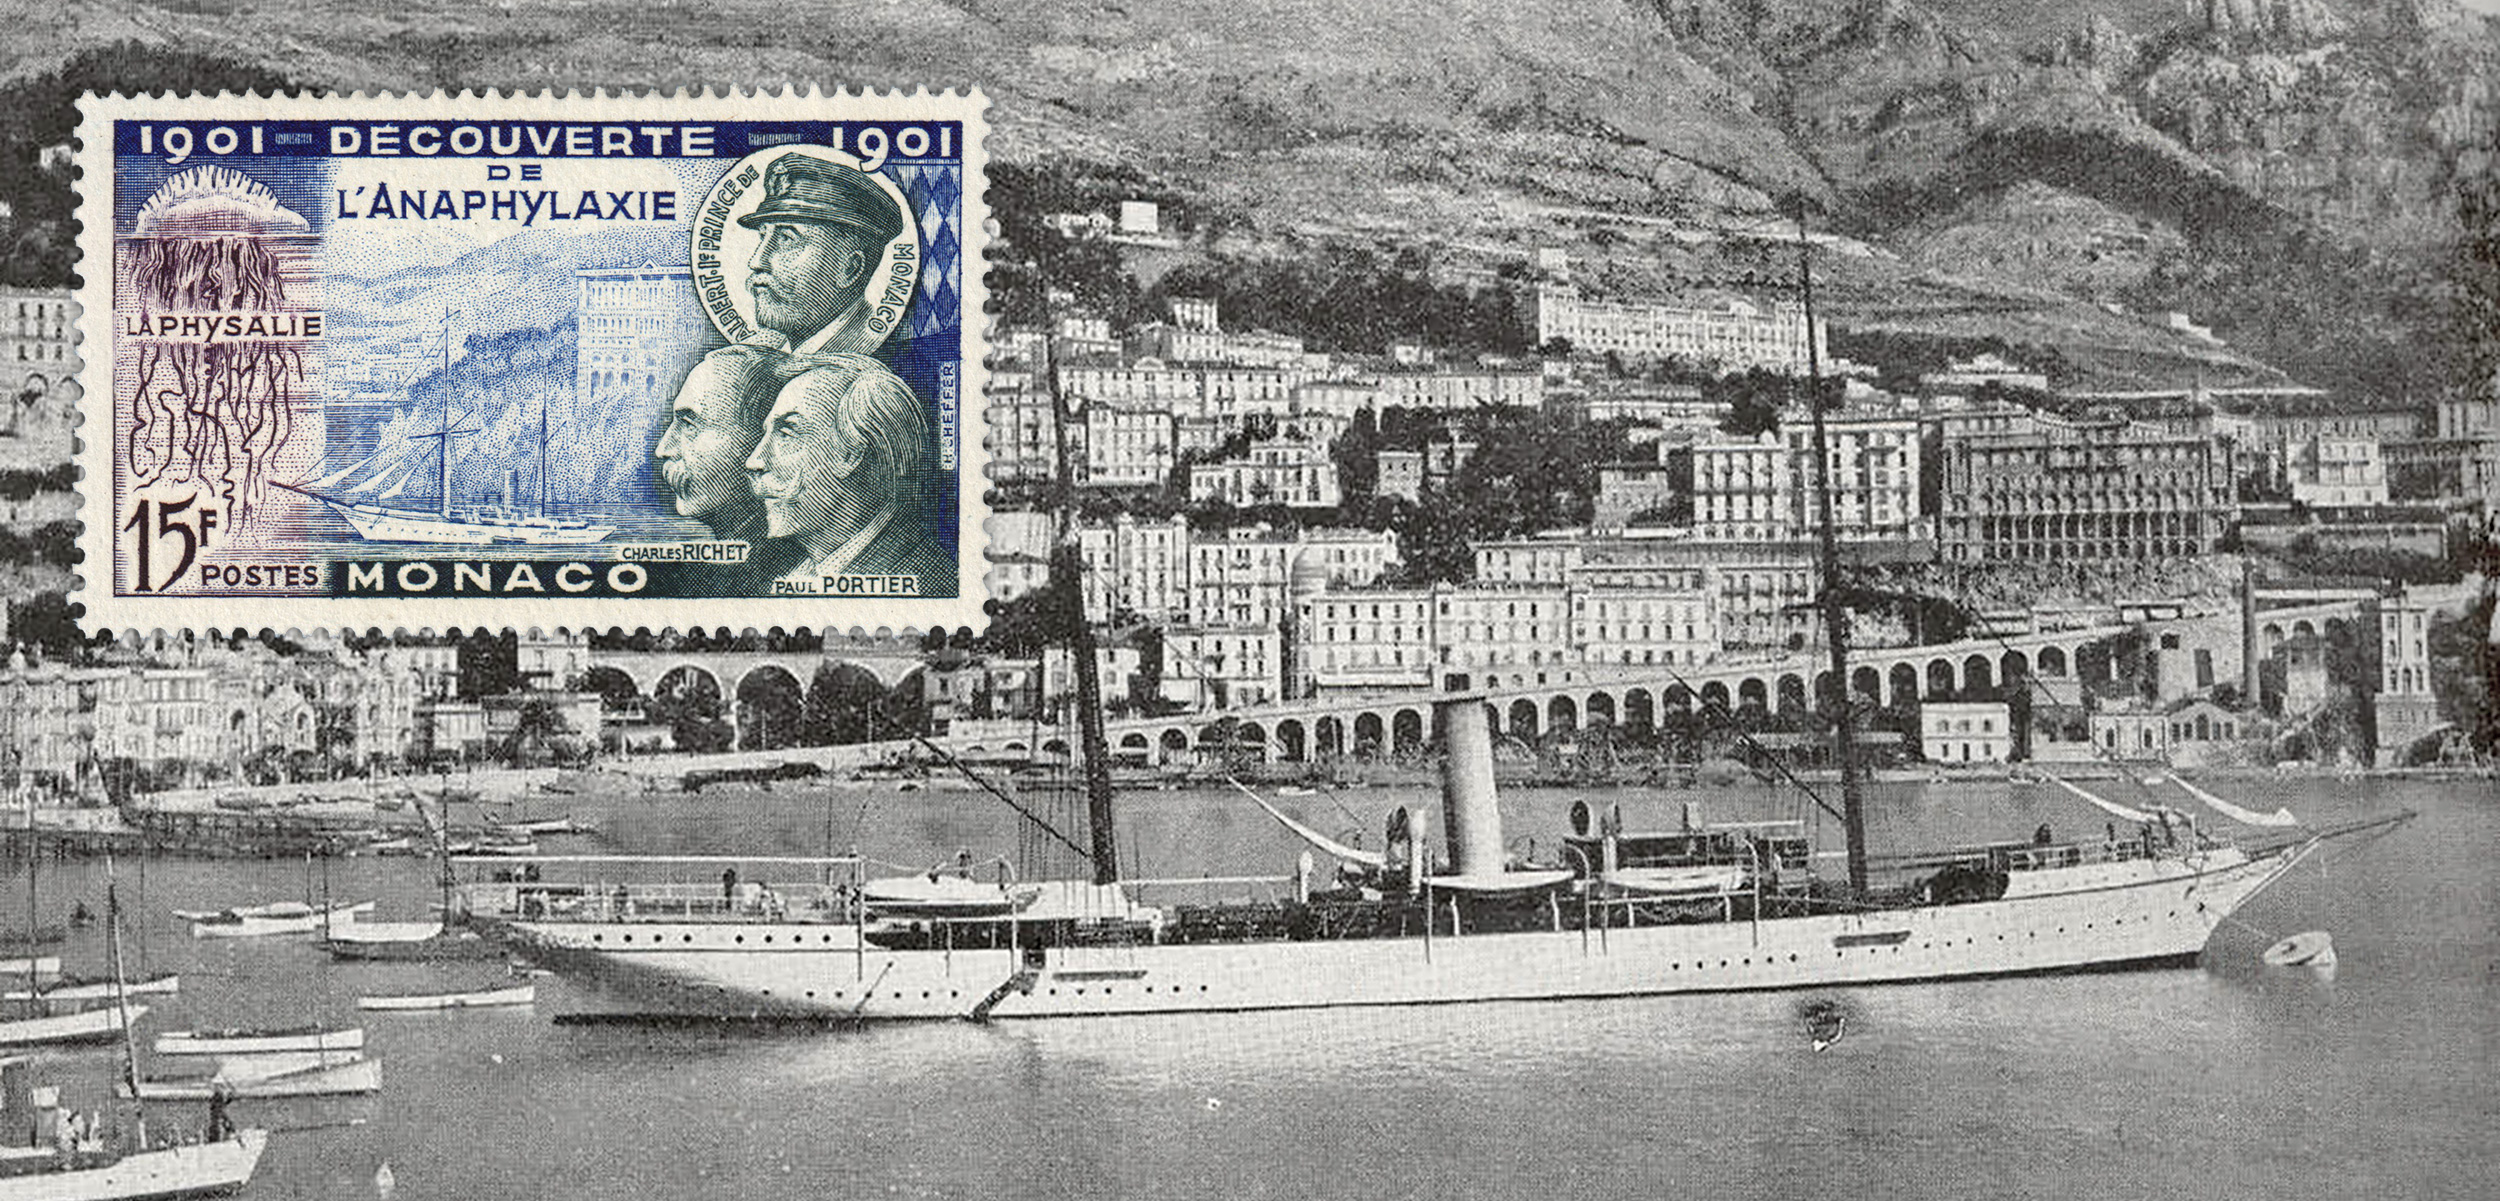 The discovery of anaphylaxis began aboard one of Prince Albert of Monaco's yachts. Monaco commemorated the accomplishment with a series of stamps, but unfortunately depicted the wrong vessel. Background photo courtesy of Freshwater and Marine Image Bank/University of Washington